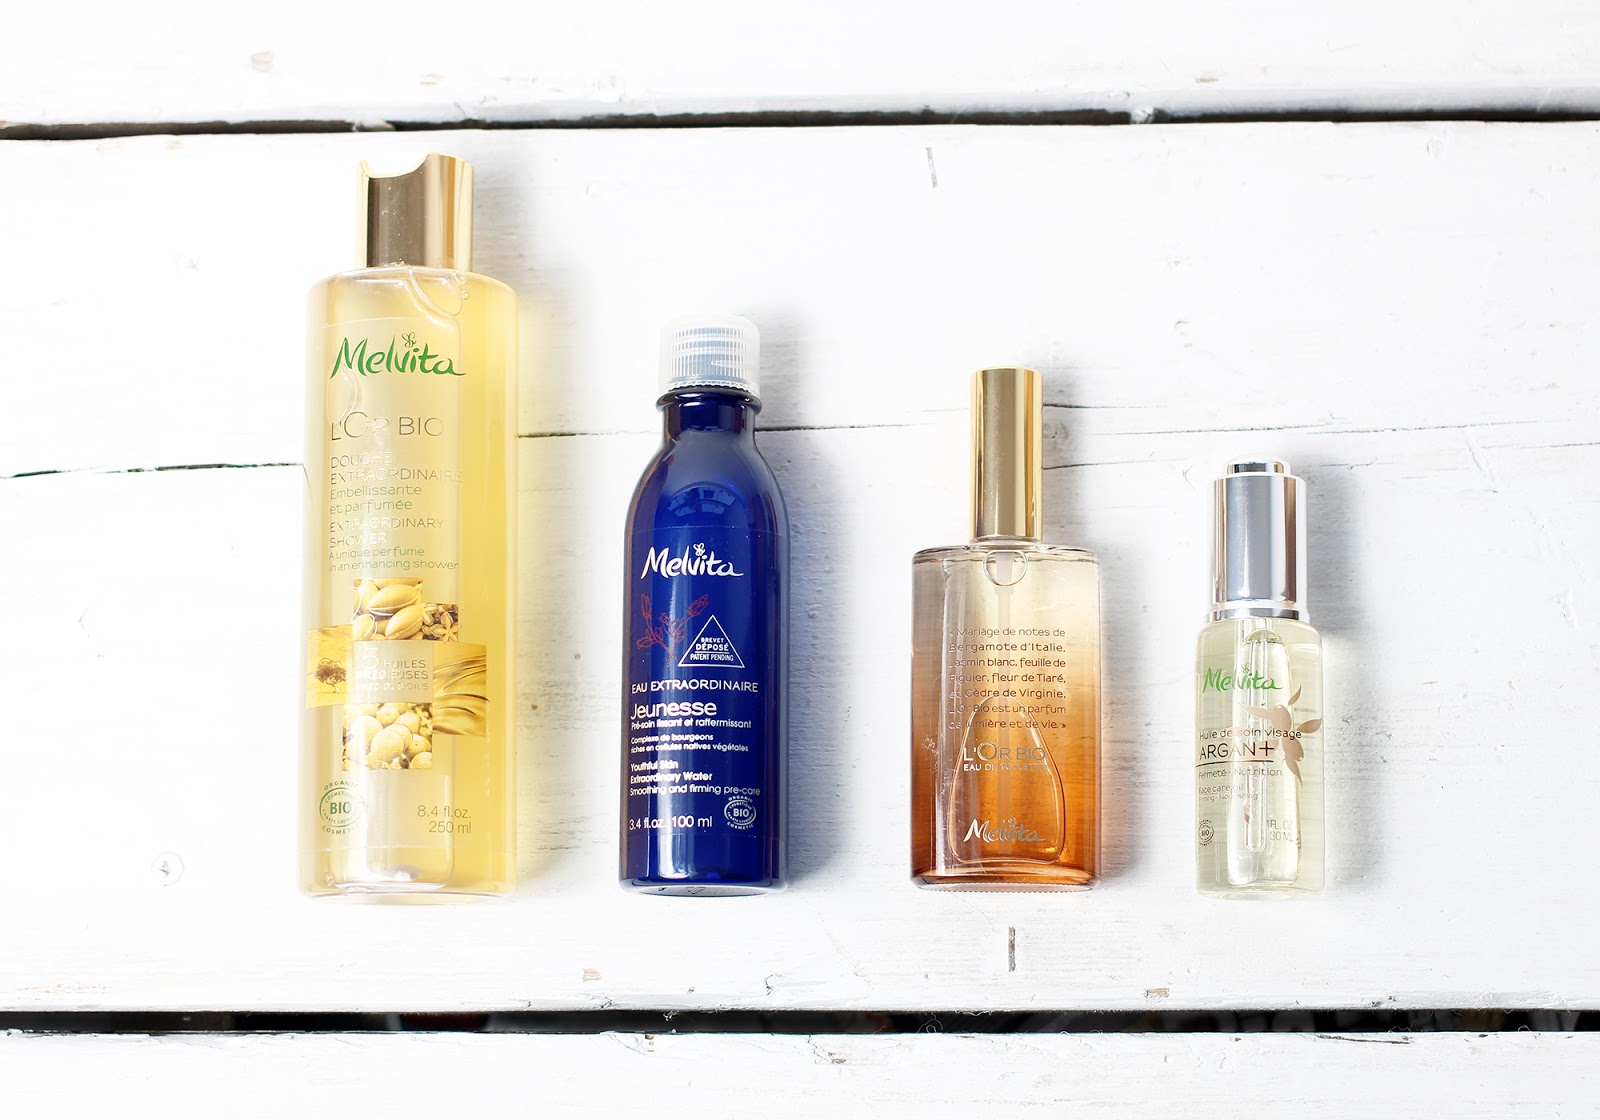 A beauty blogger reviews products from organic skincare brand Melvita